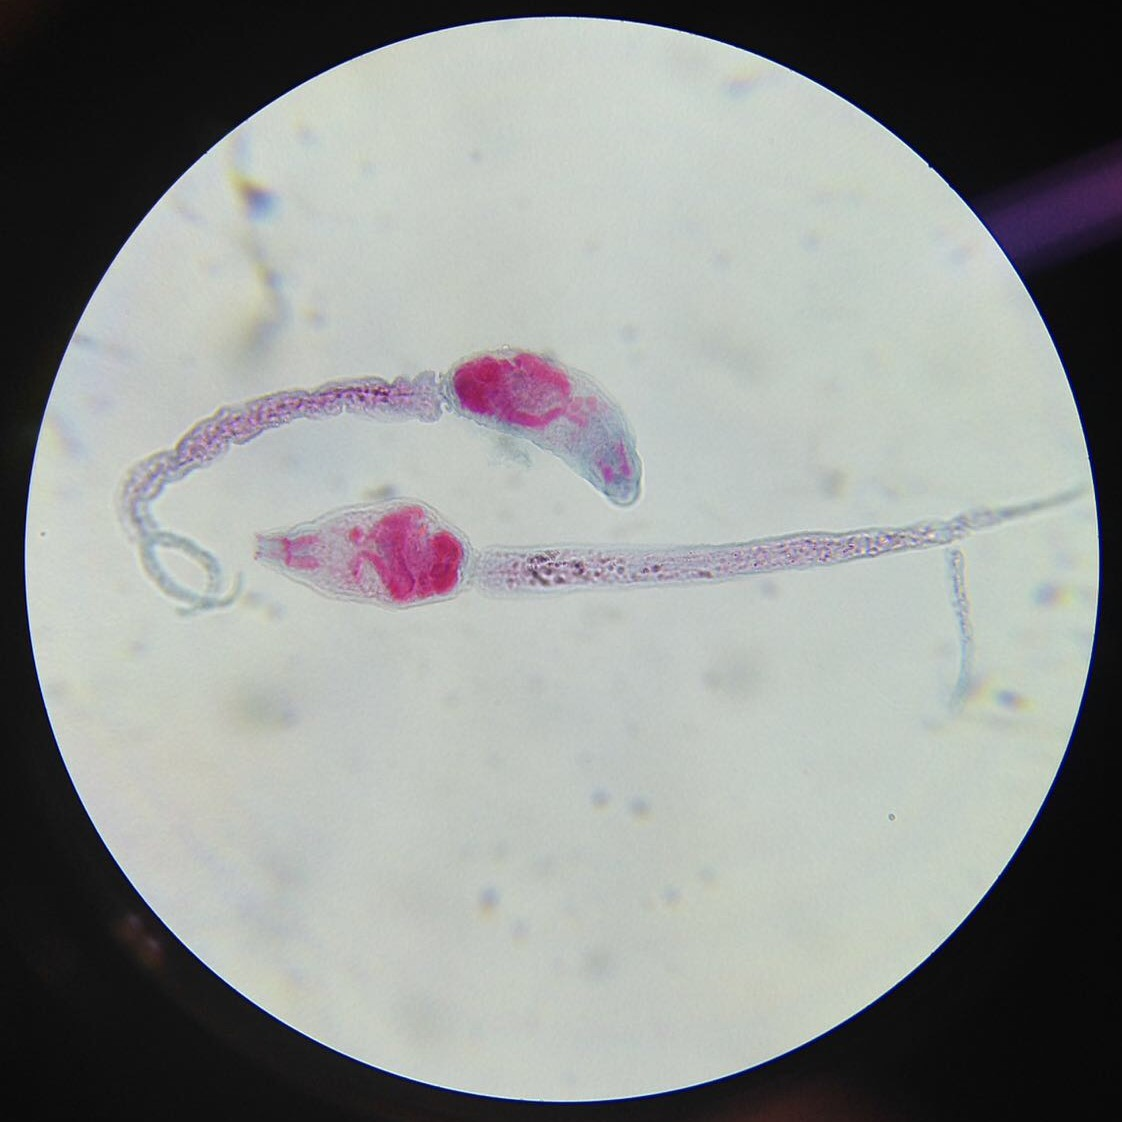 parasitic worm infections -